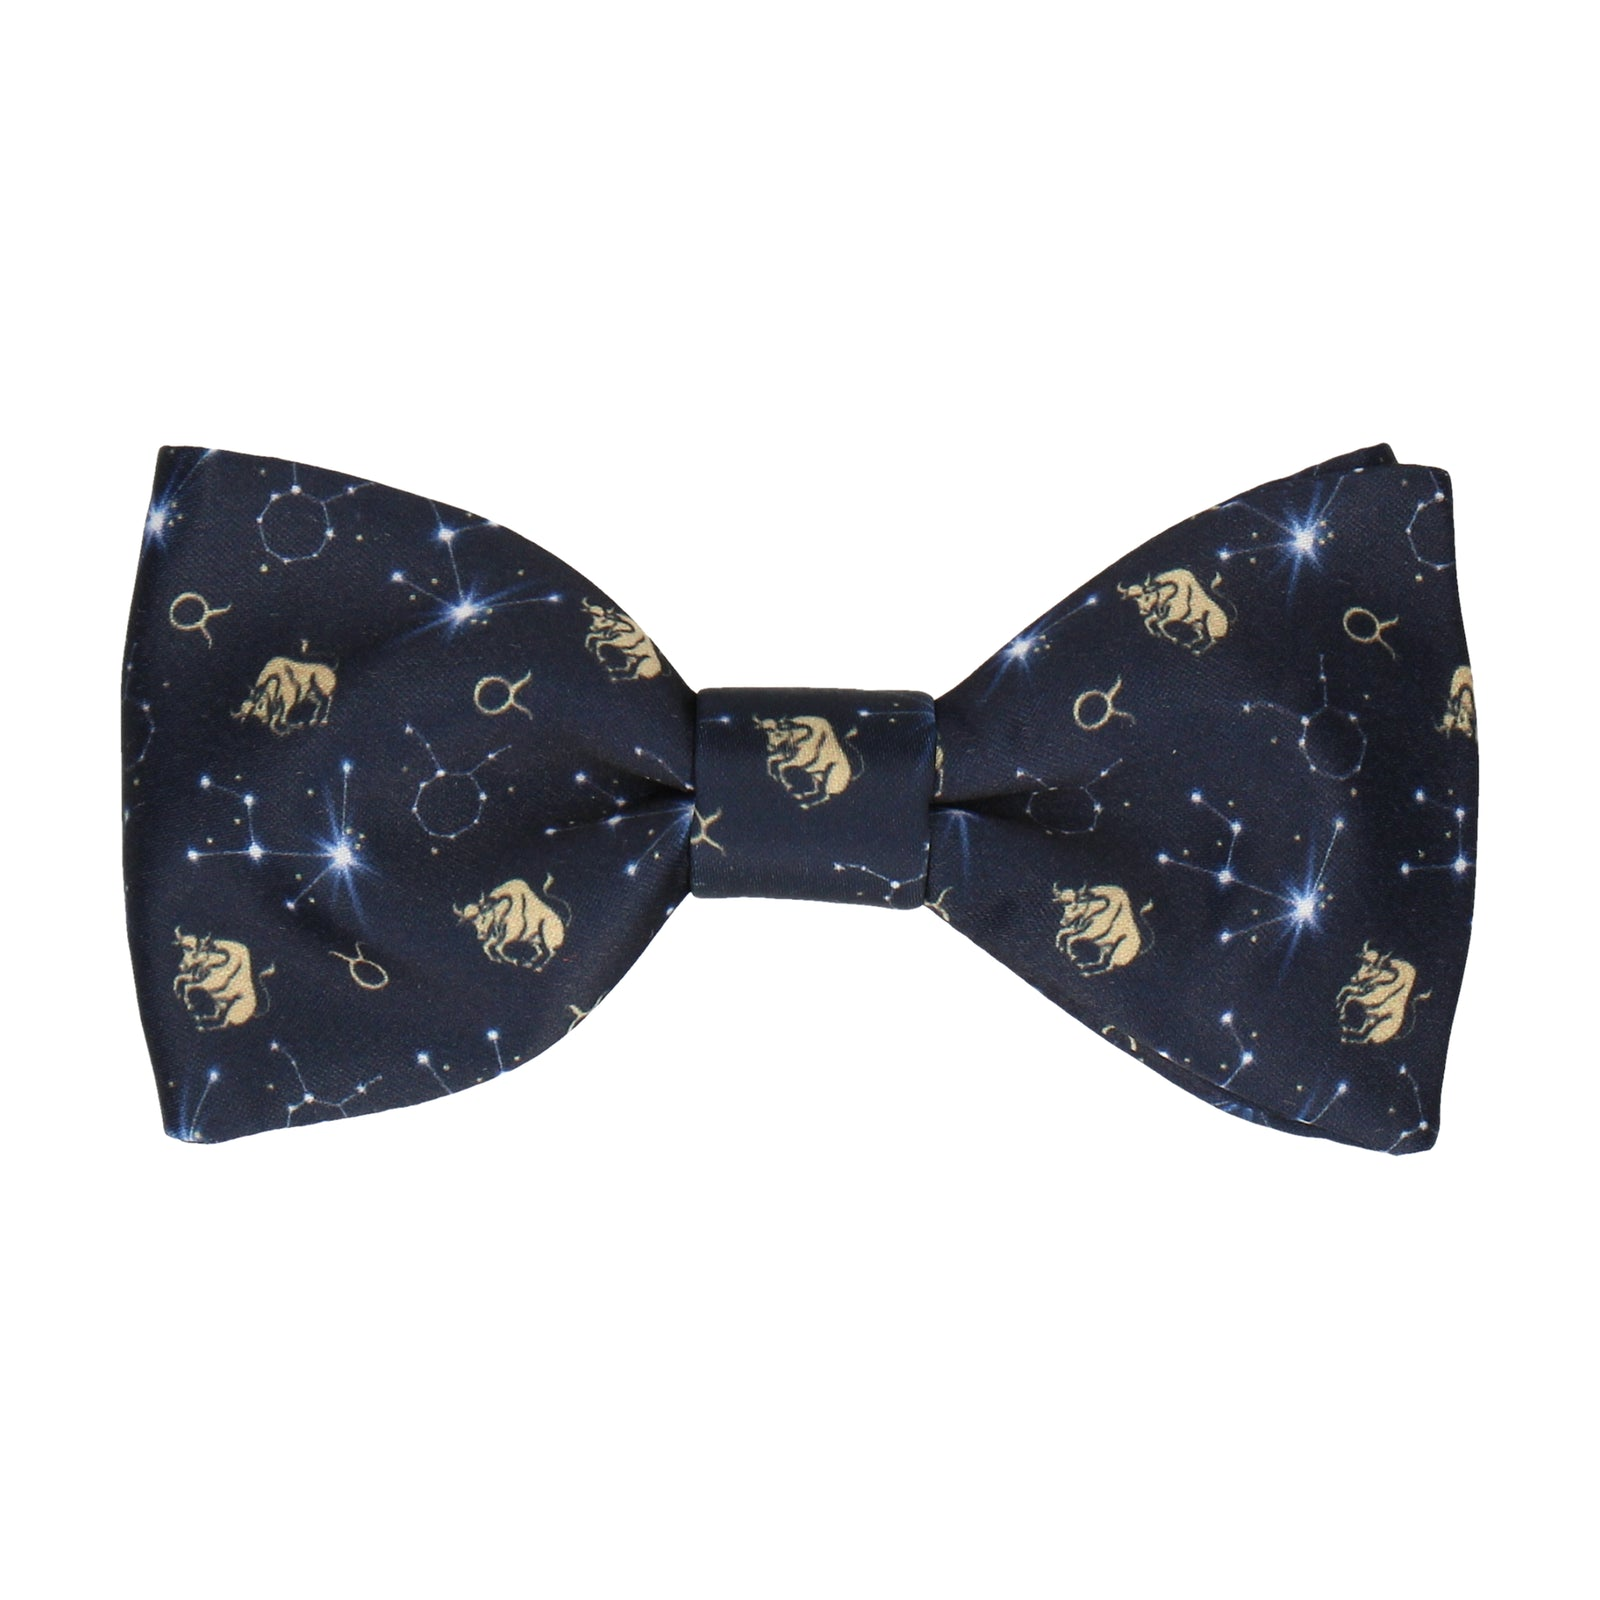 Taurus Zodiac Star Sign Bow Tie